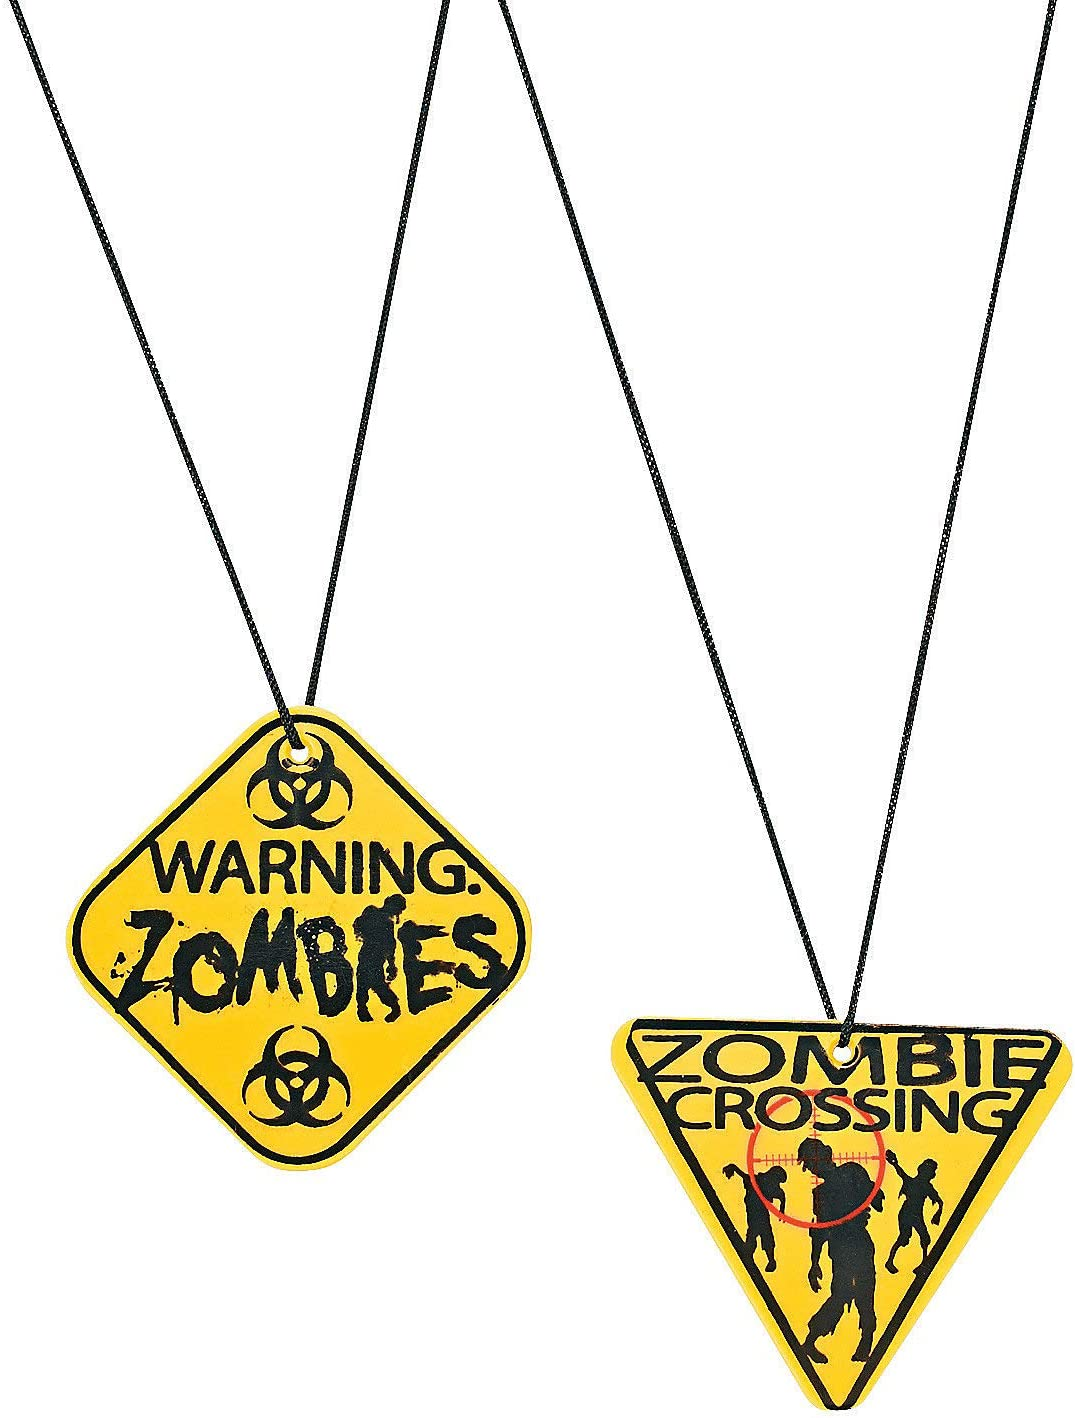 Party Supplies Zombie Warning Sign Necklaces,2-2 1//4 plastic signs,12 ct 2-2 1//4 plastic signs Fun Express